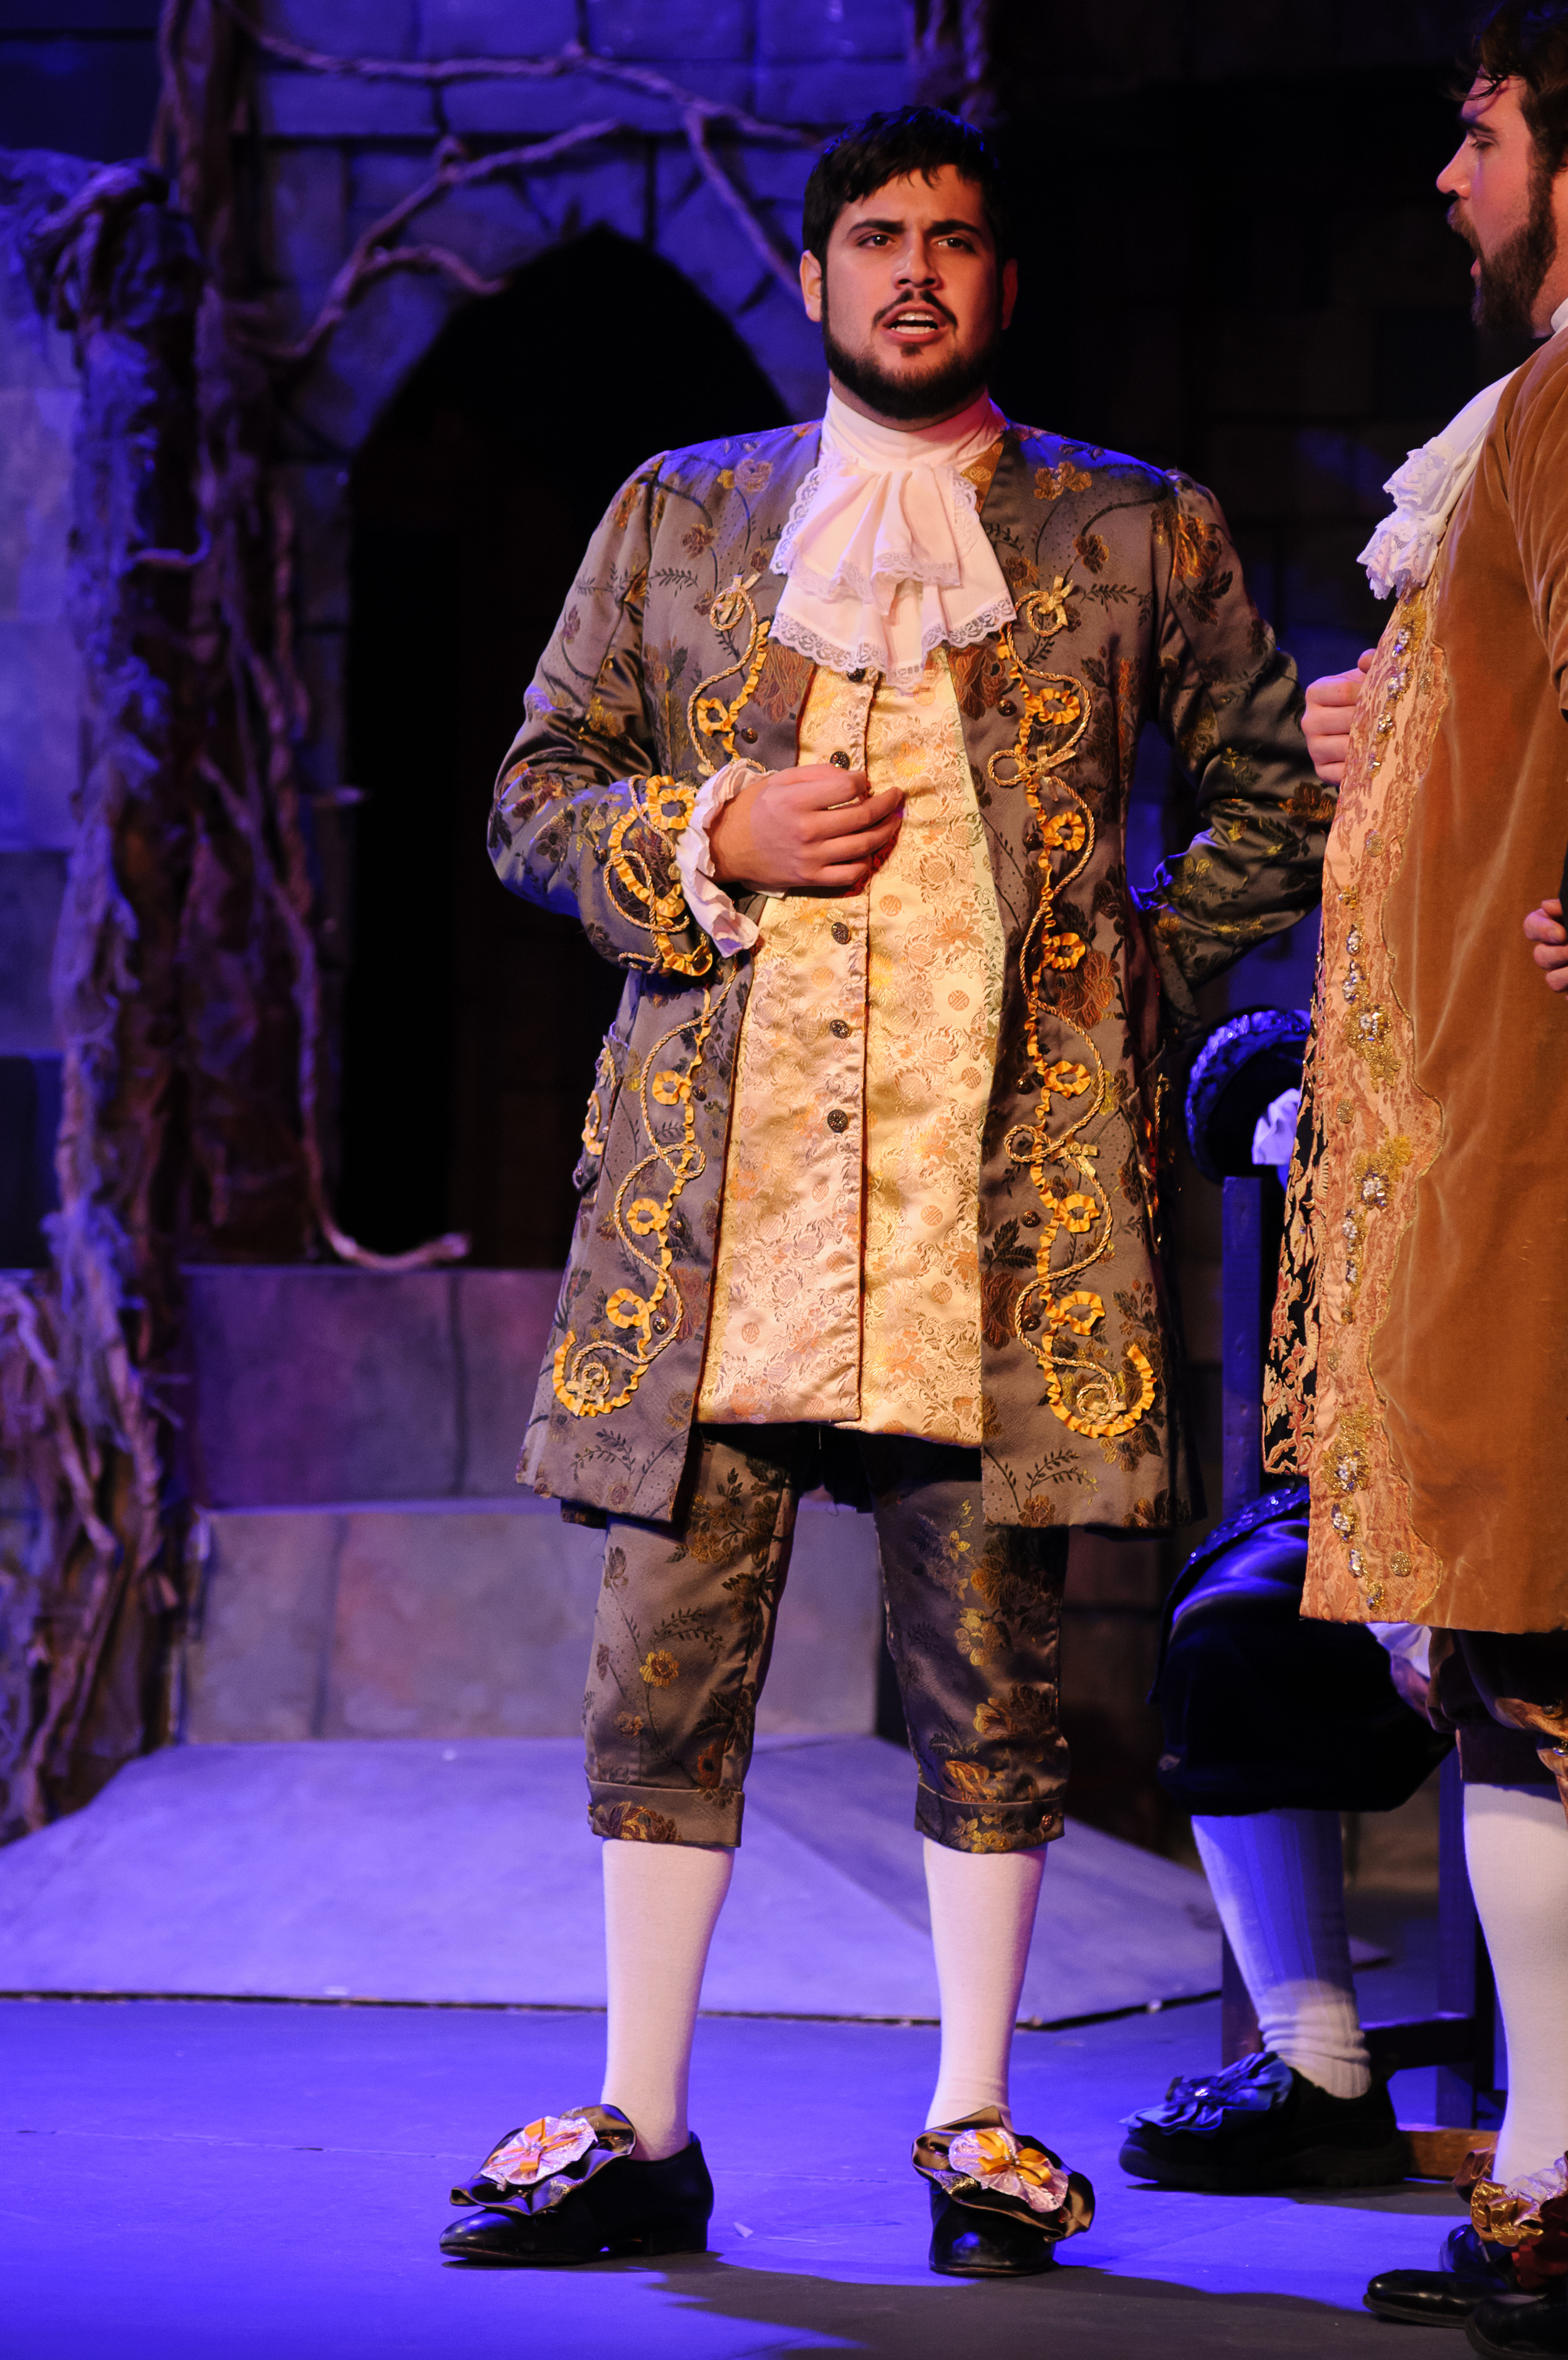 OITH_Rigoletto-DressRehearsal_Preview_HighRes_008_4284.jpg